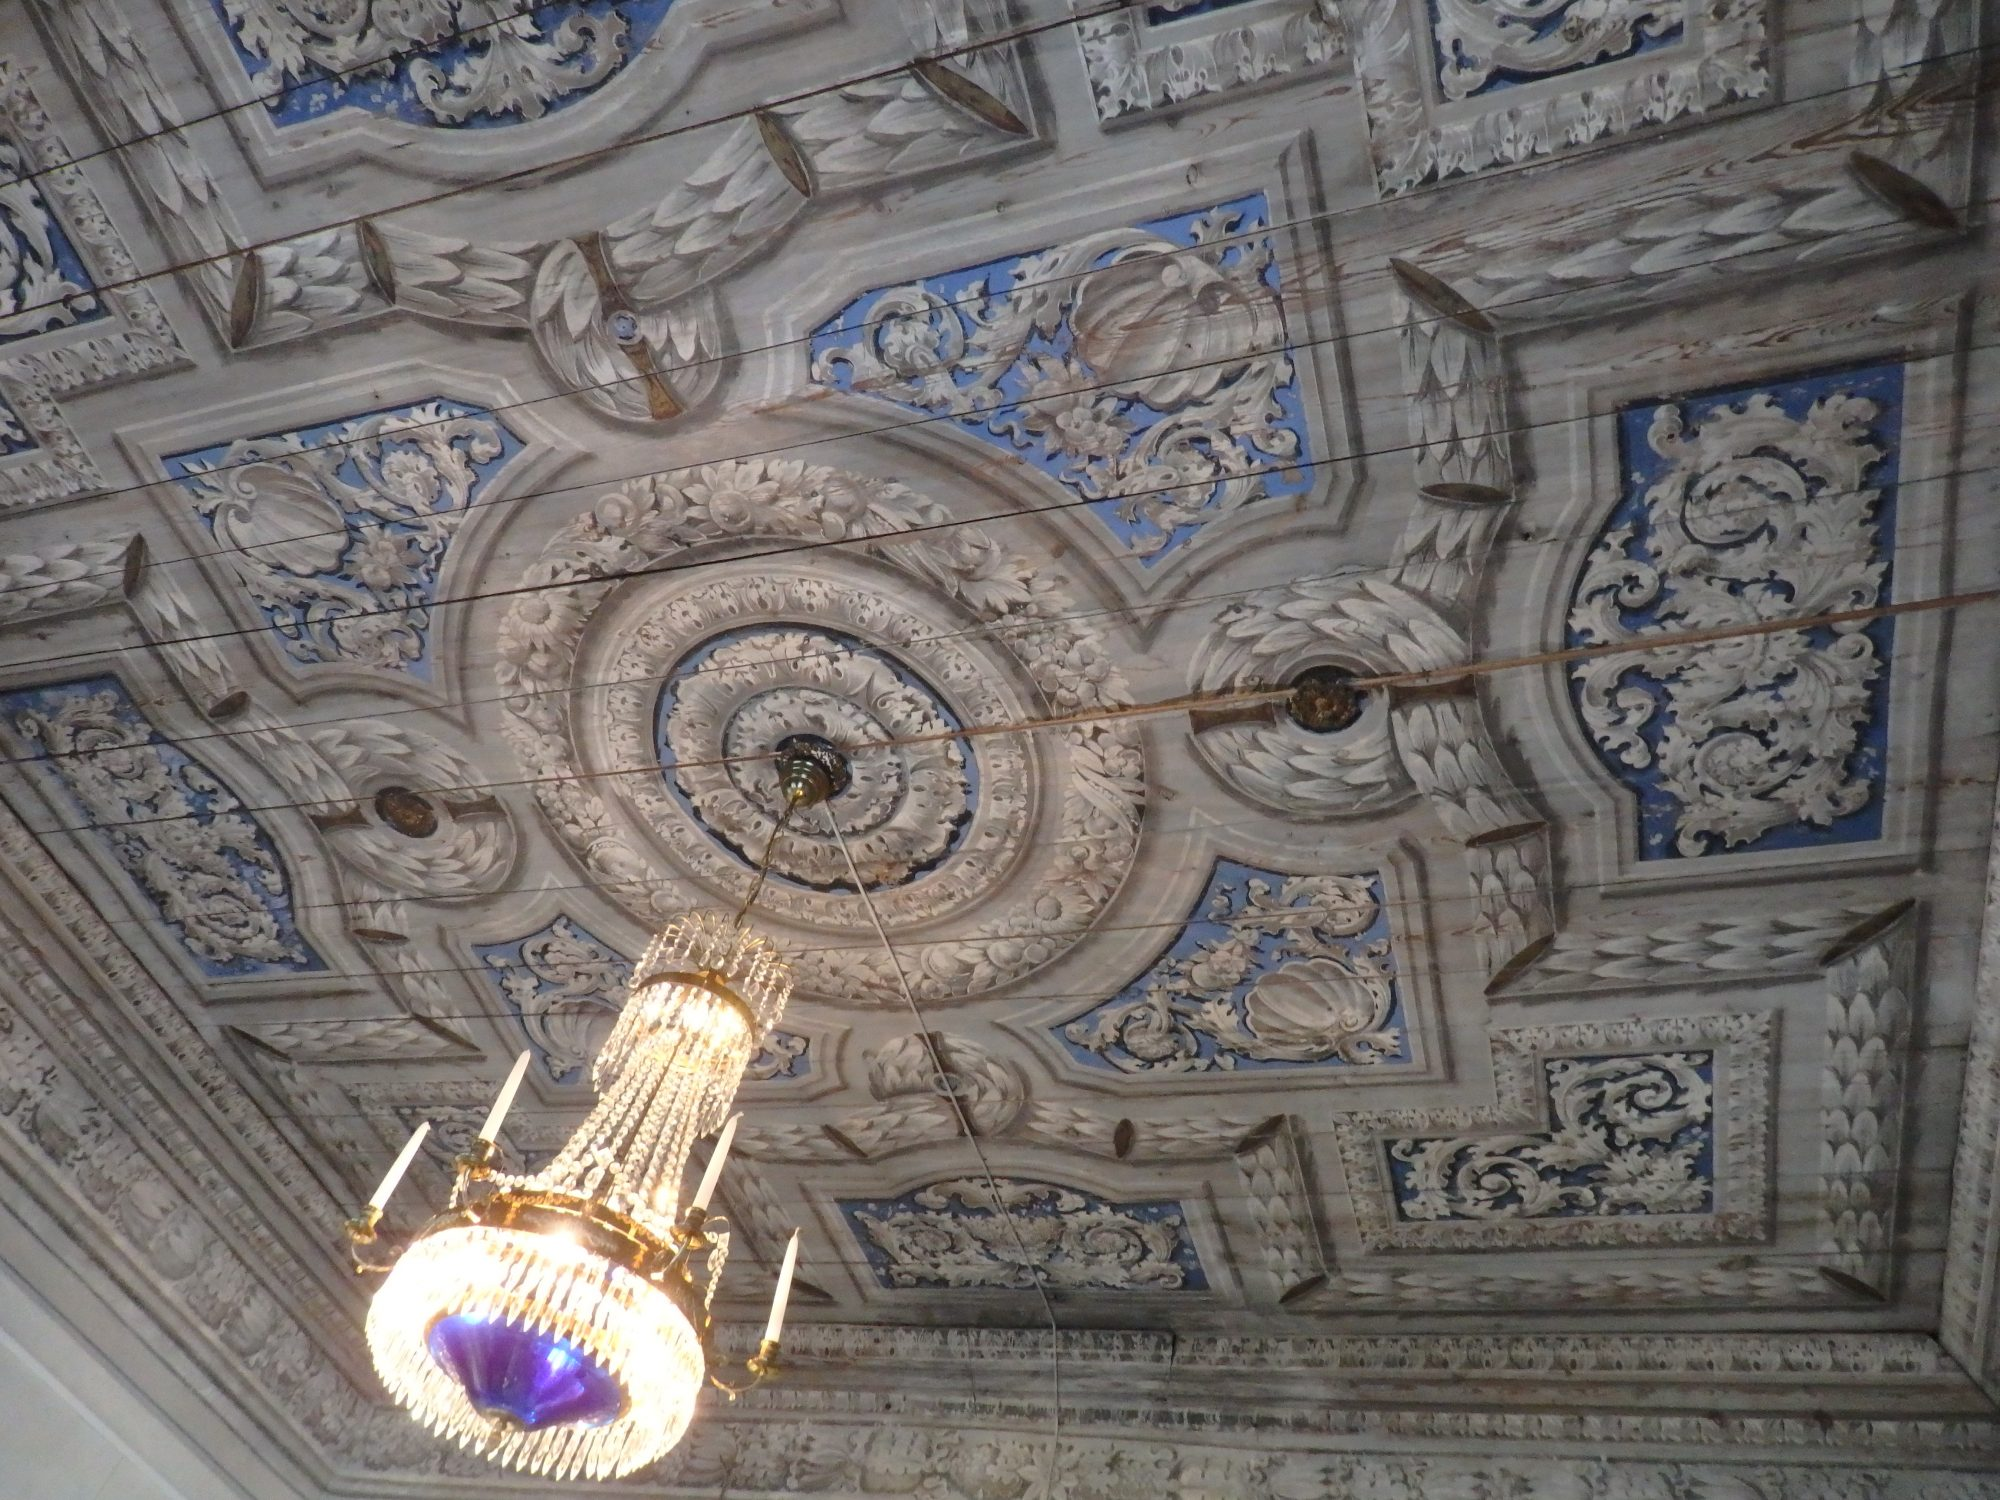 a painted ceiling in Öster Malma